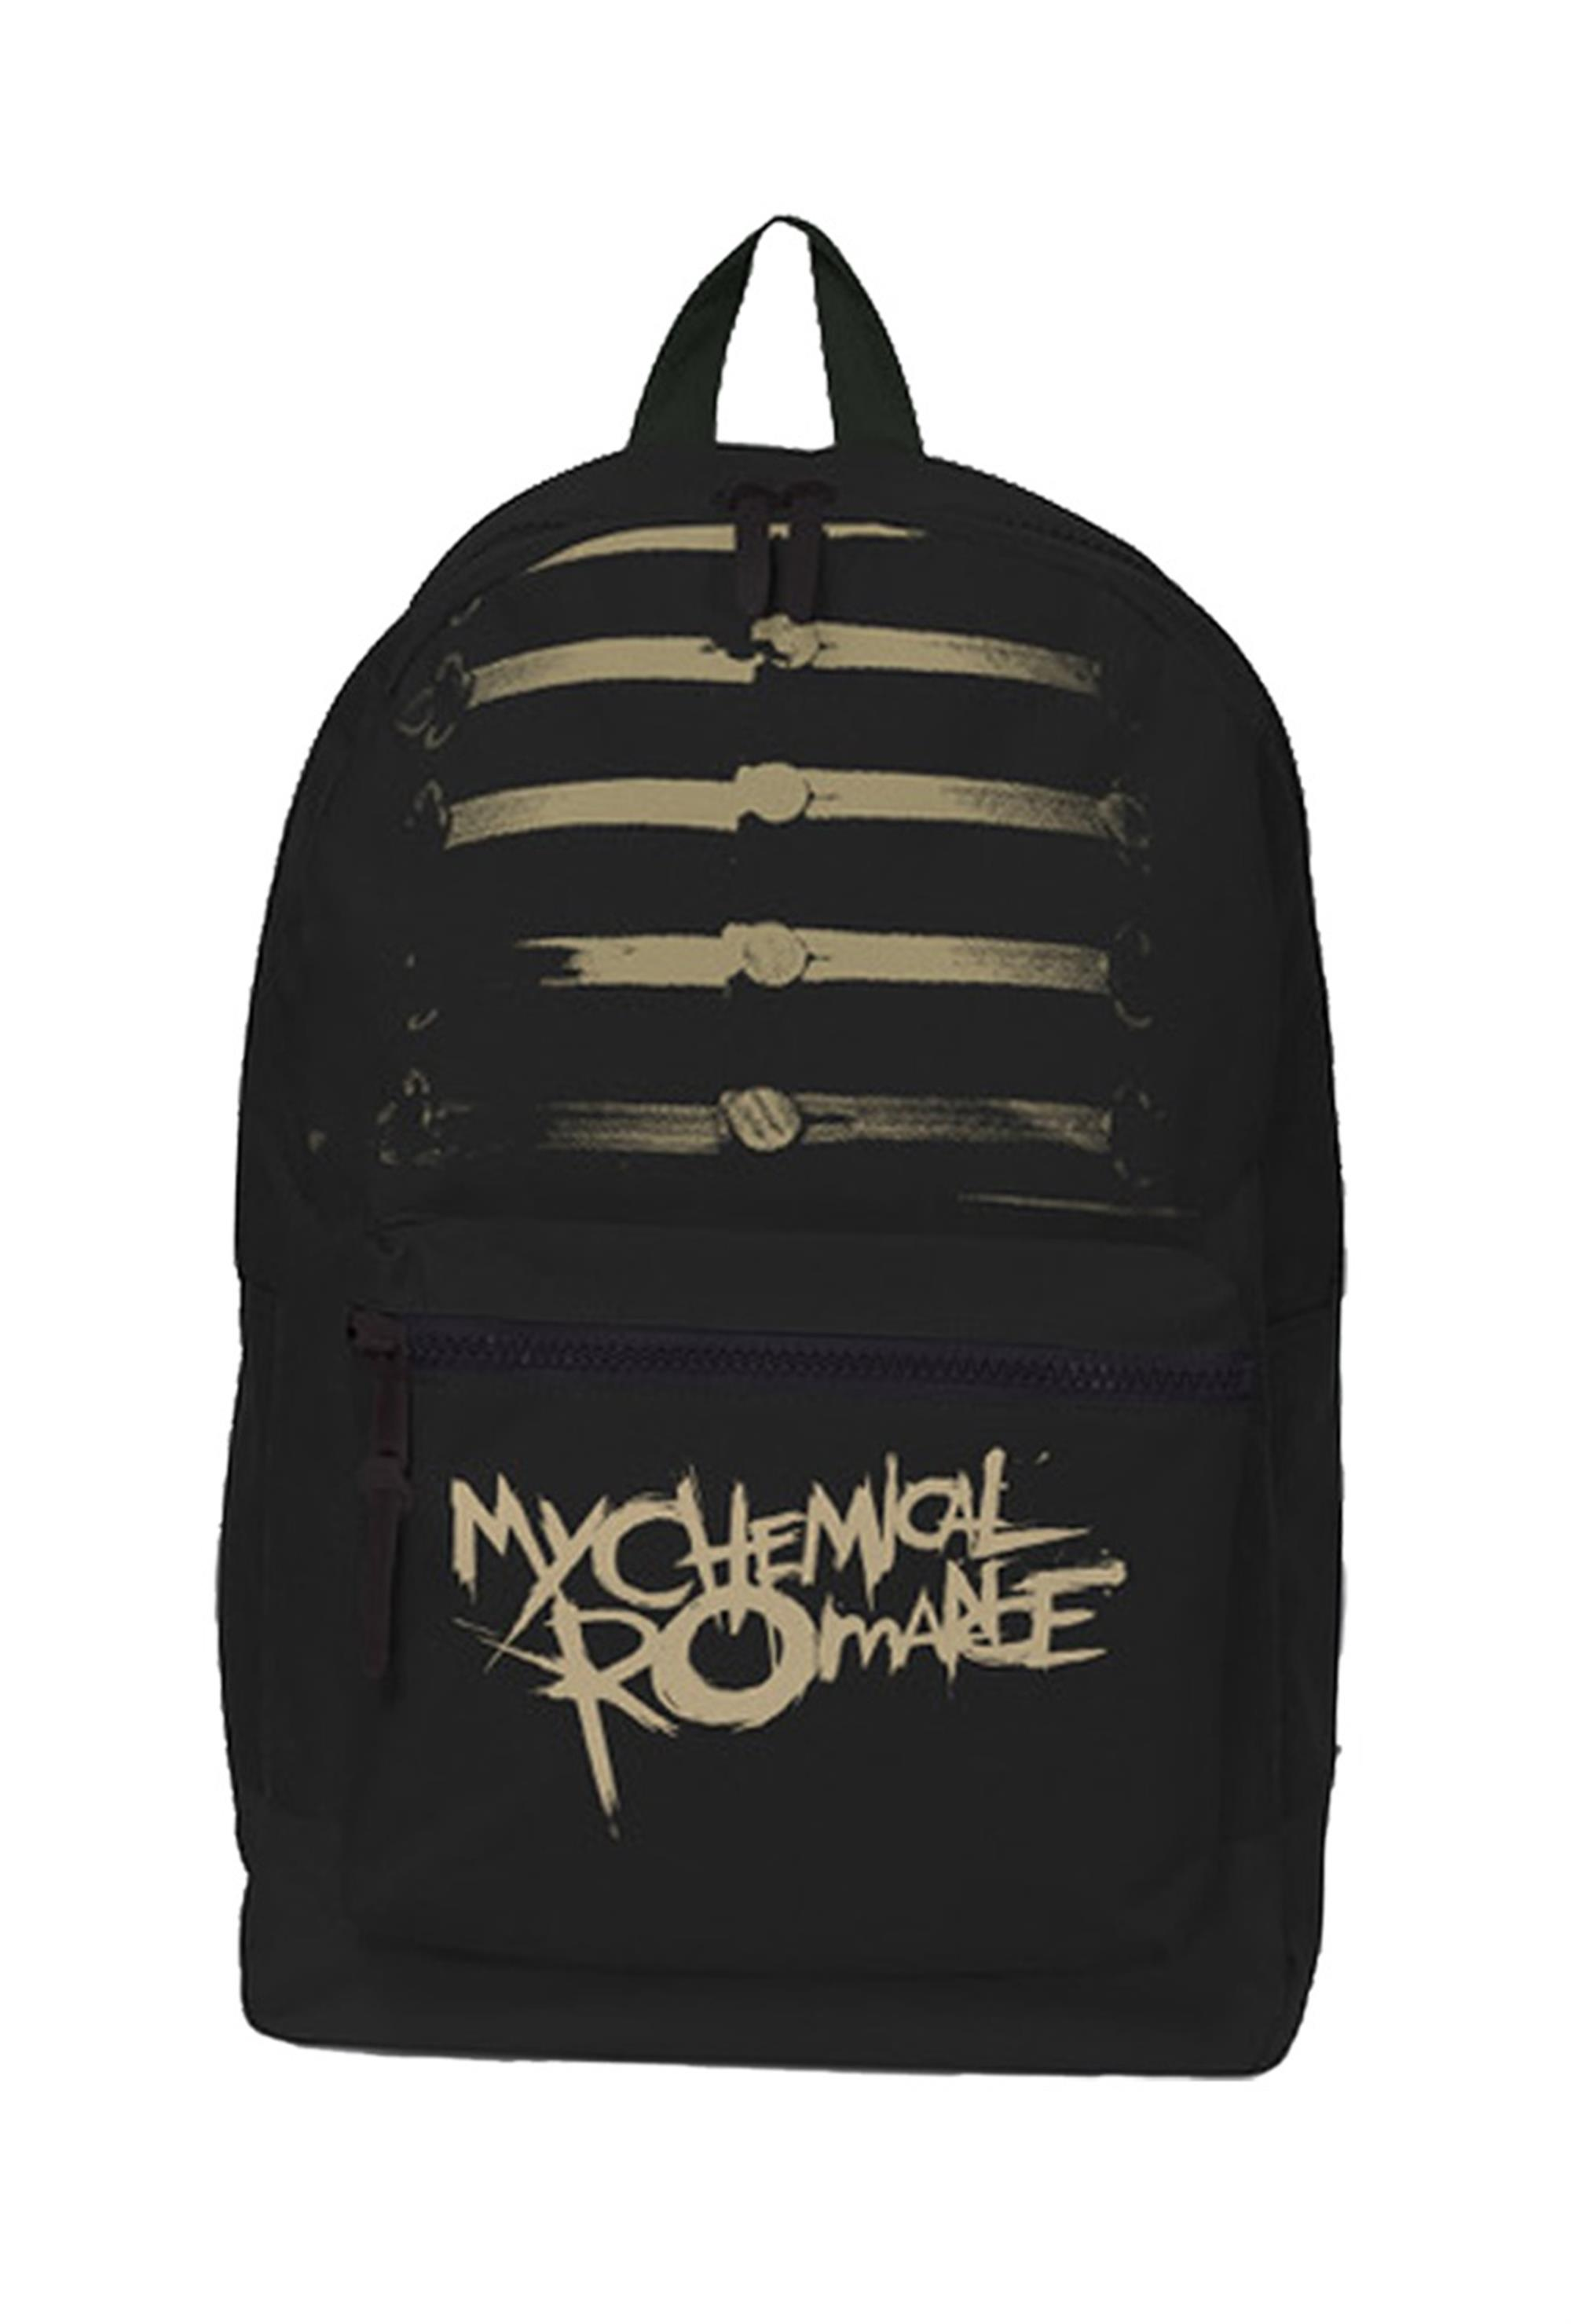 My Chemical Romance Parade Backpack